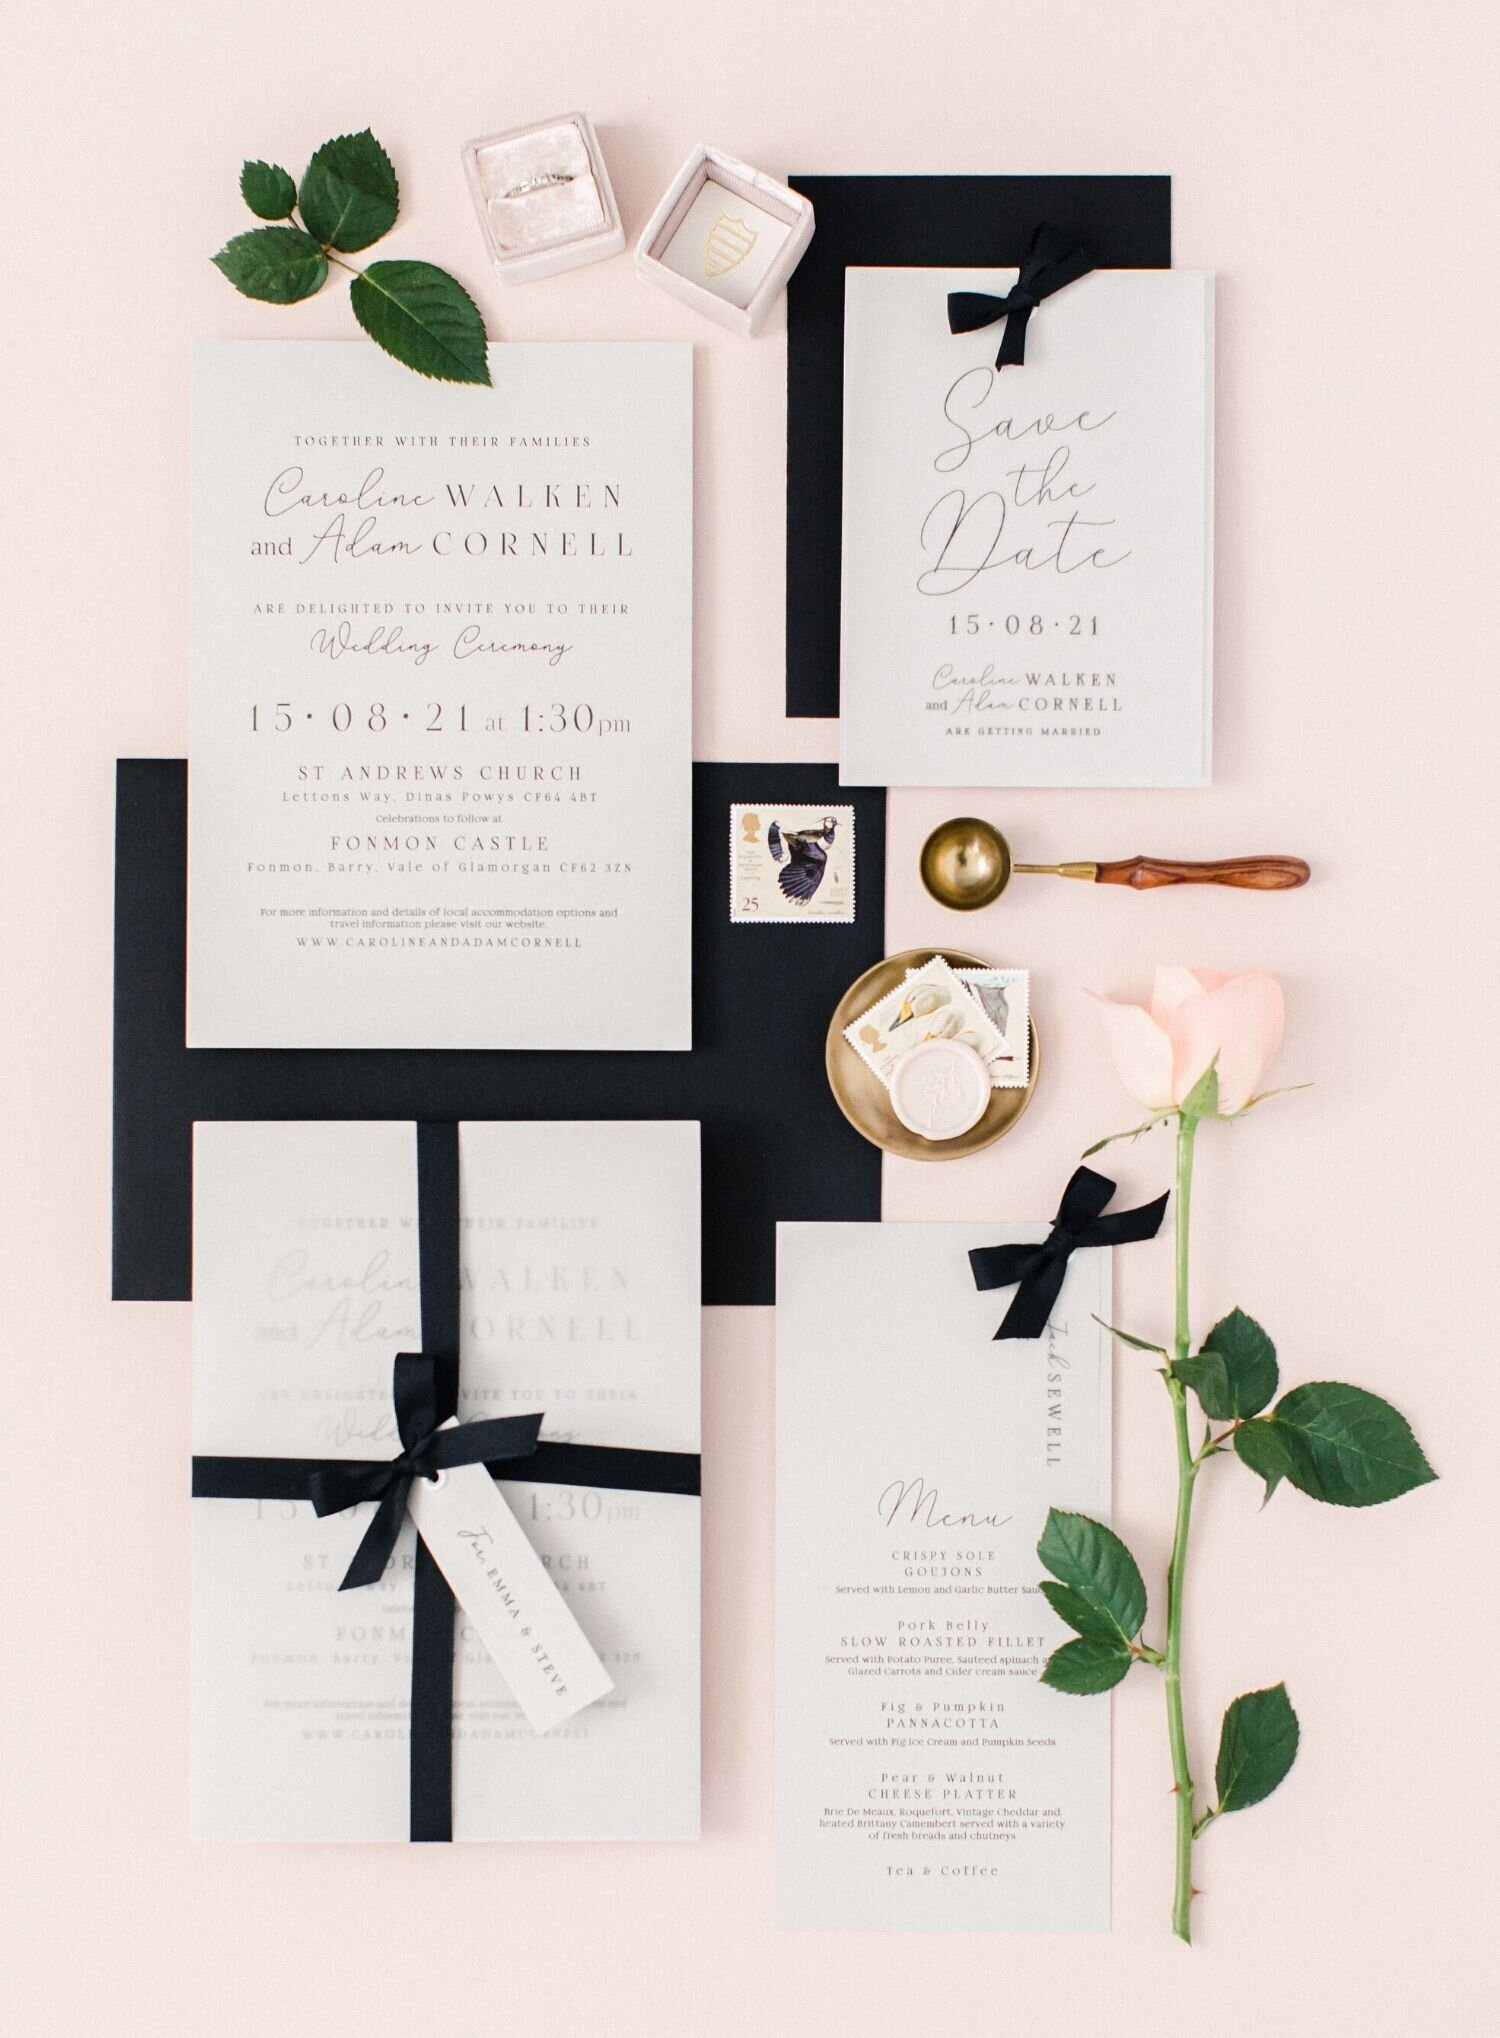 Wedding invites laying on heirloom bindery linen styling board